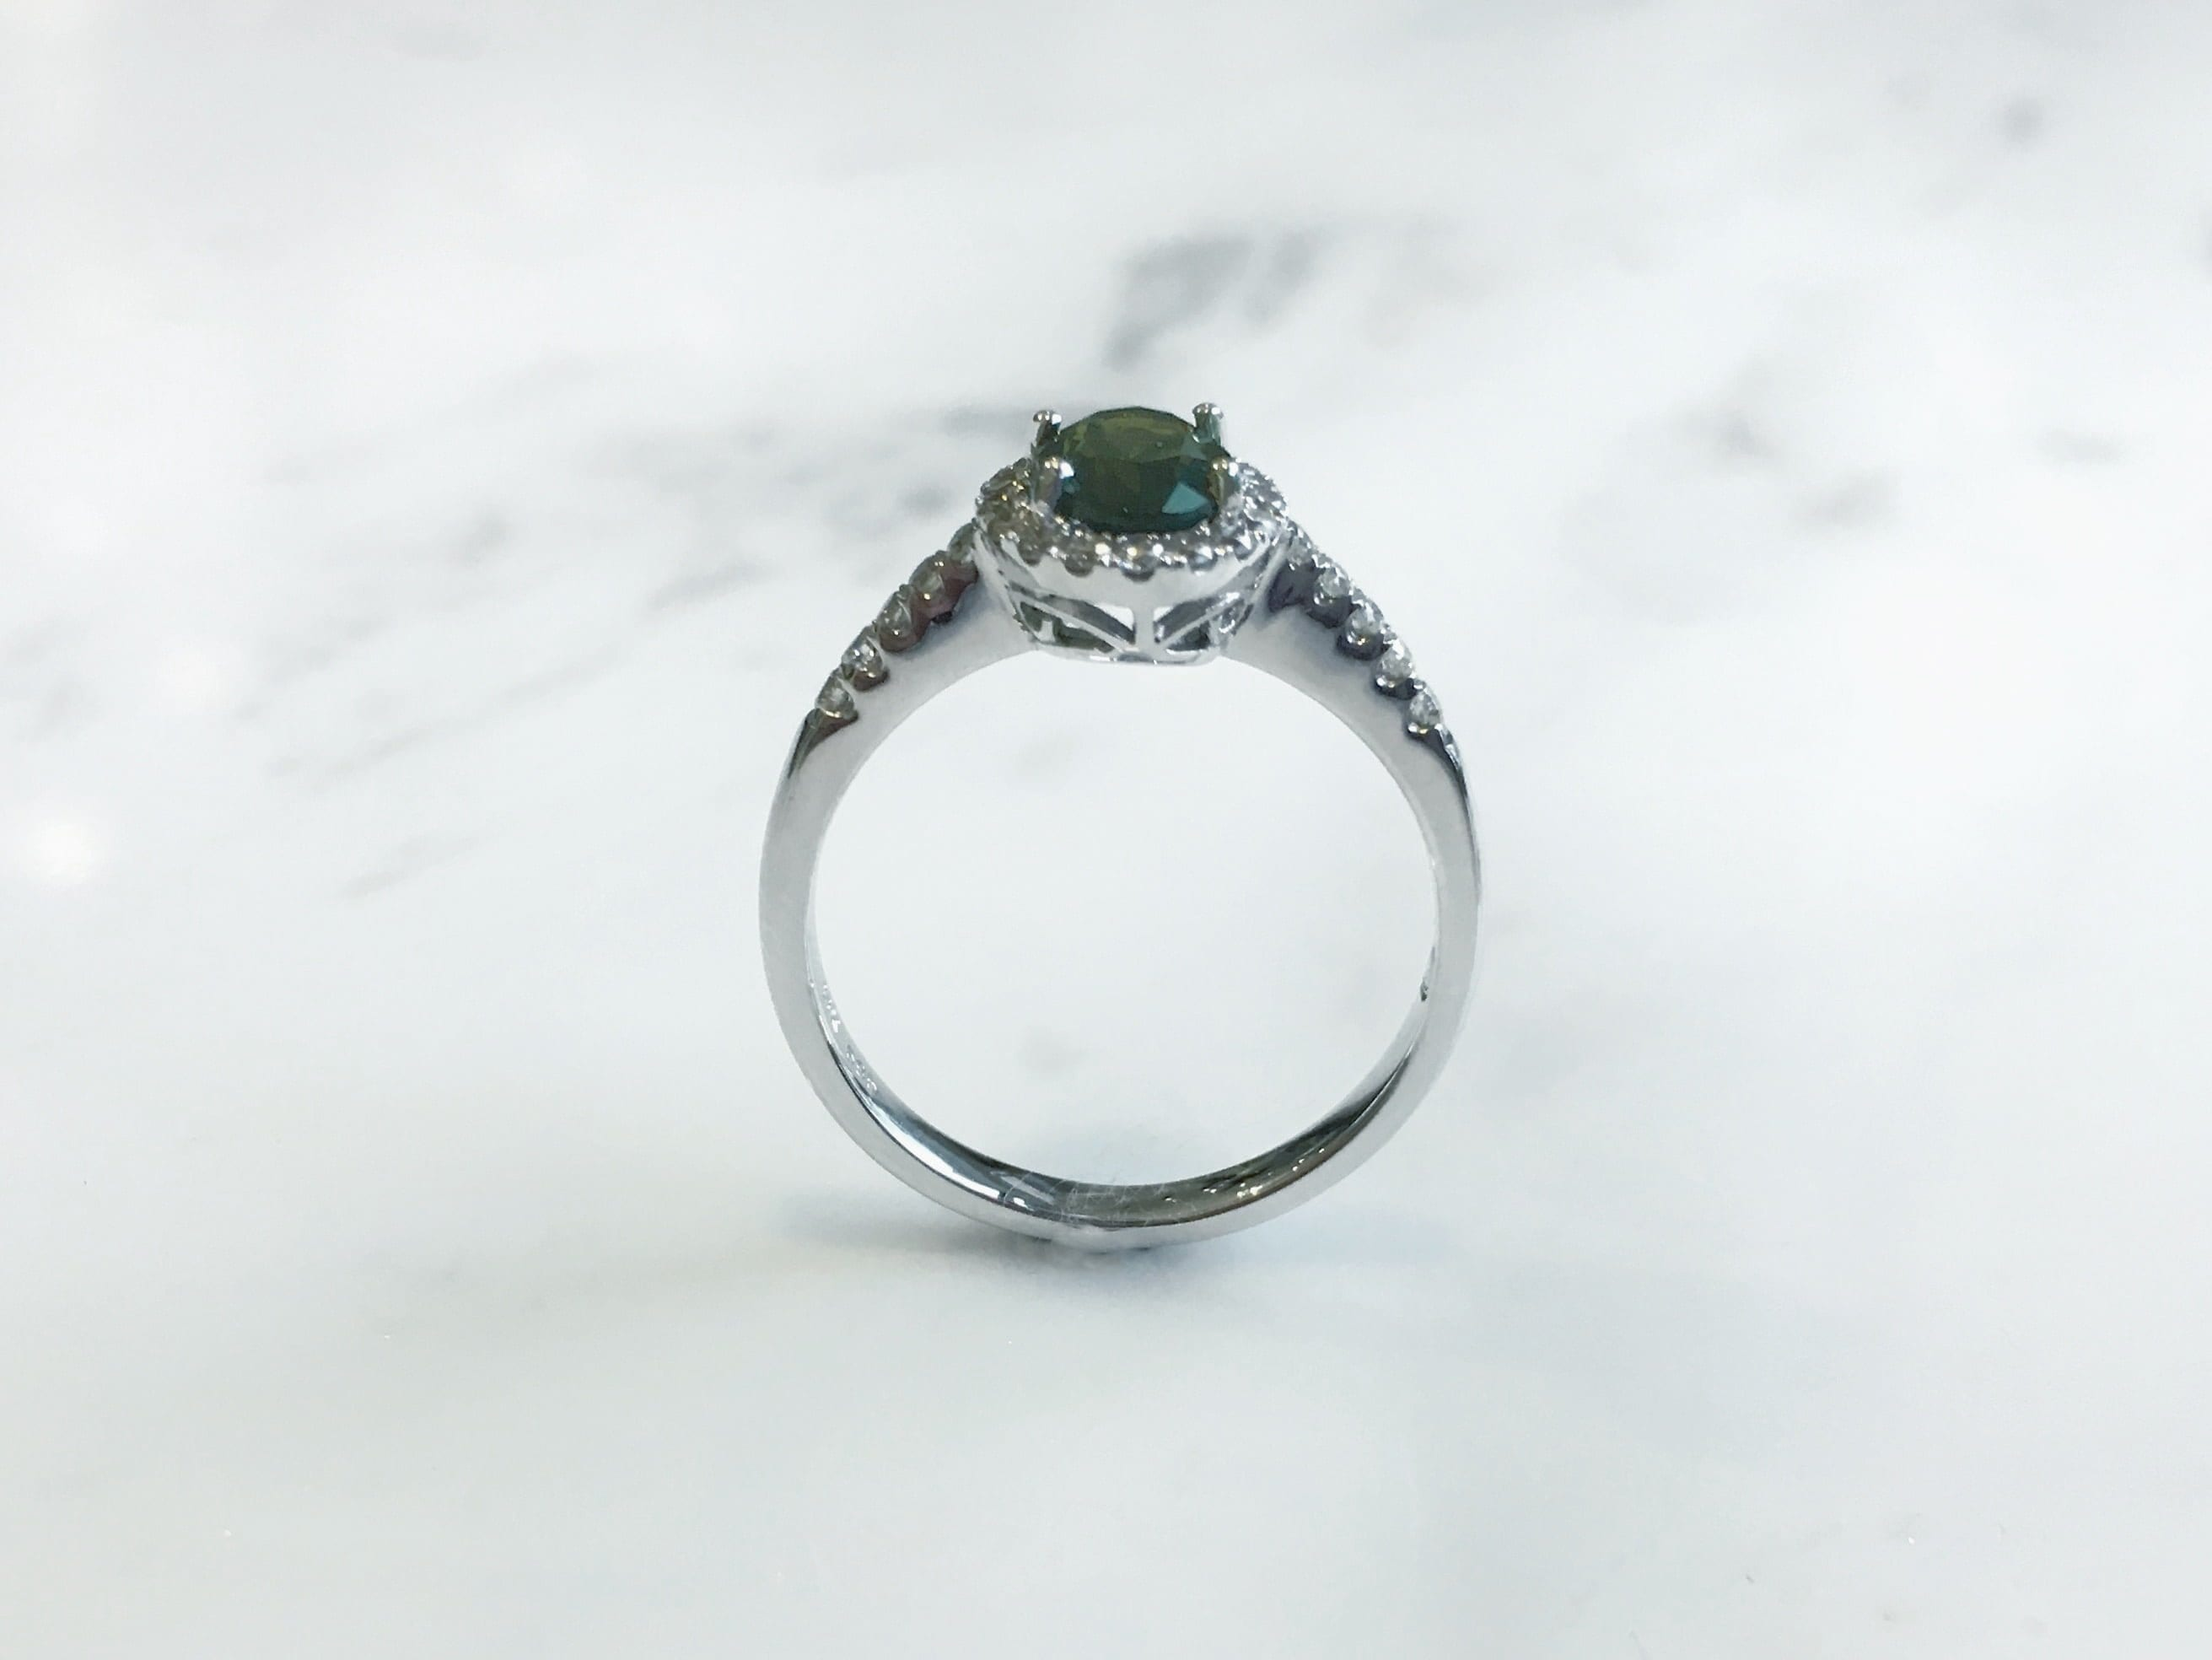 large diamond ring image rings engagement tourmaline gemstone white jewellery green gold